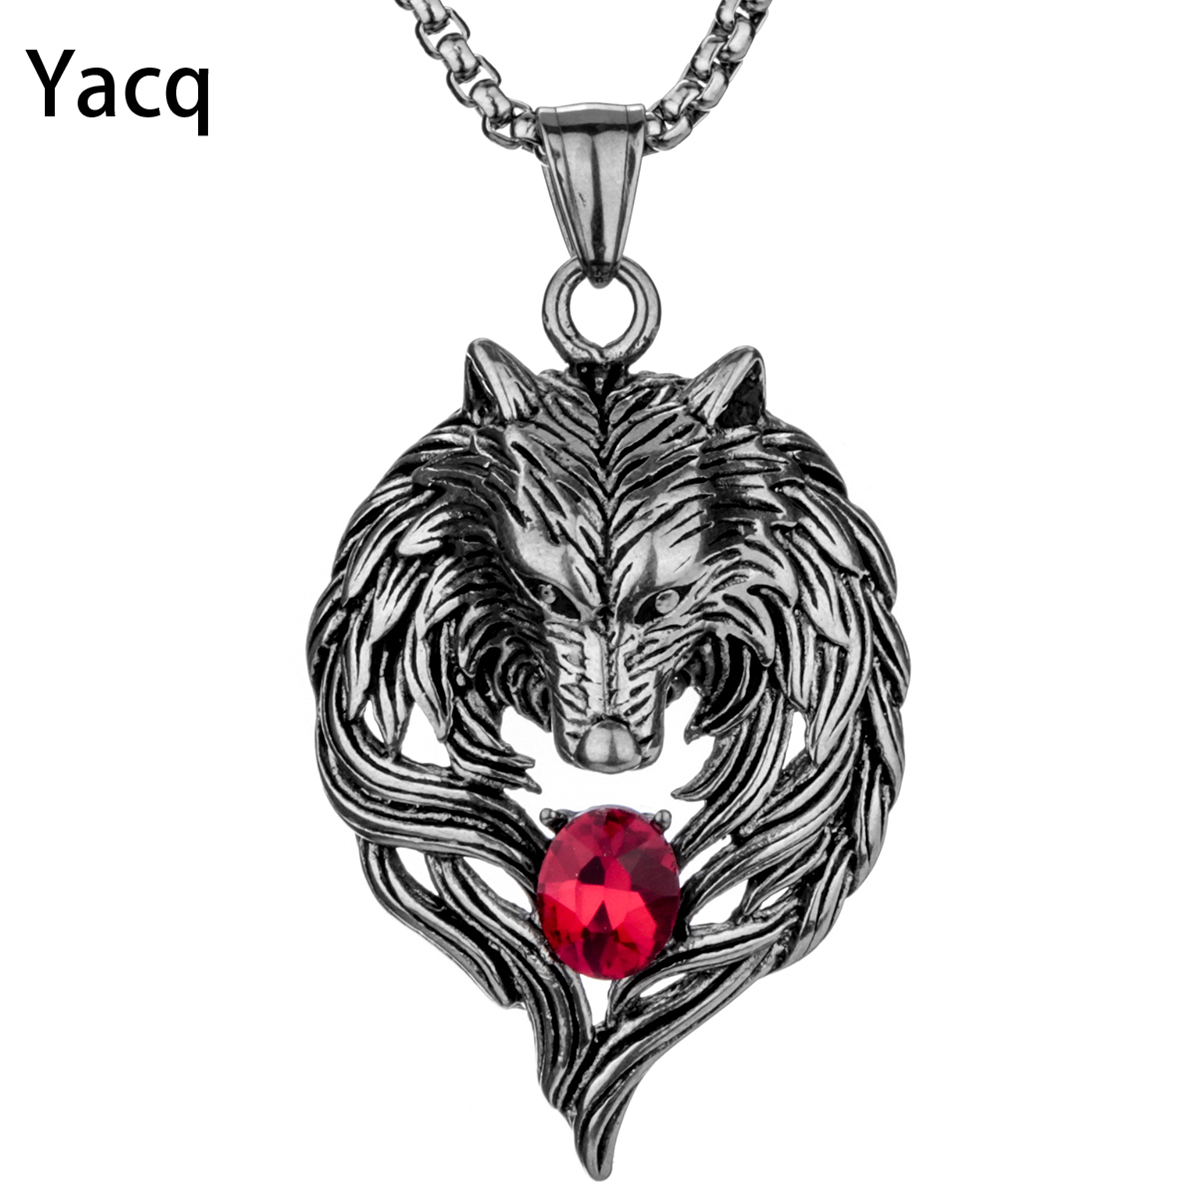 Yacq Wolf Stainless Steel Necklace for Men Women Pendant Chain Biker Jewelry Gift Fathers day Dad Him Her Mom dropshipping GN41